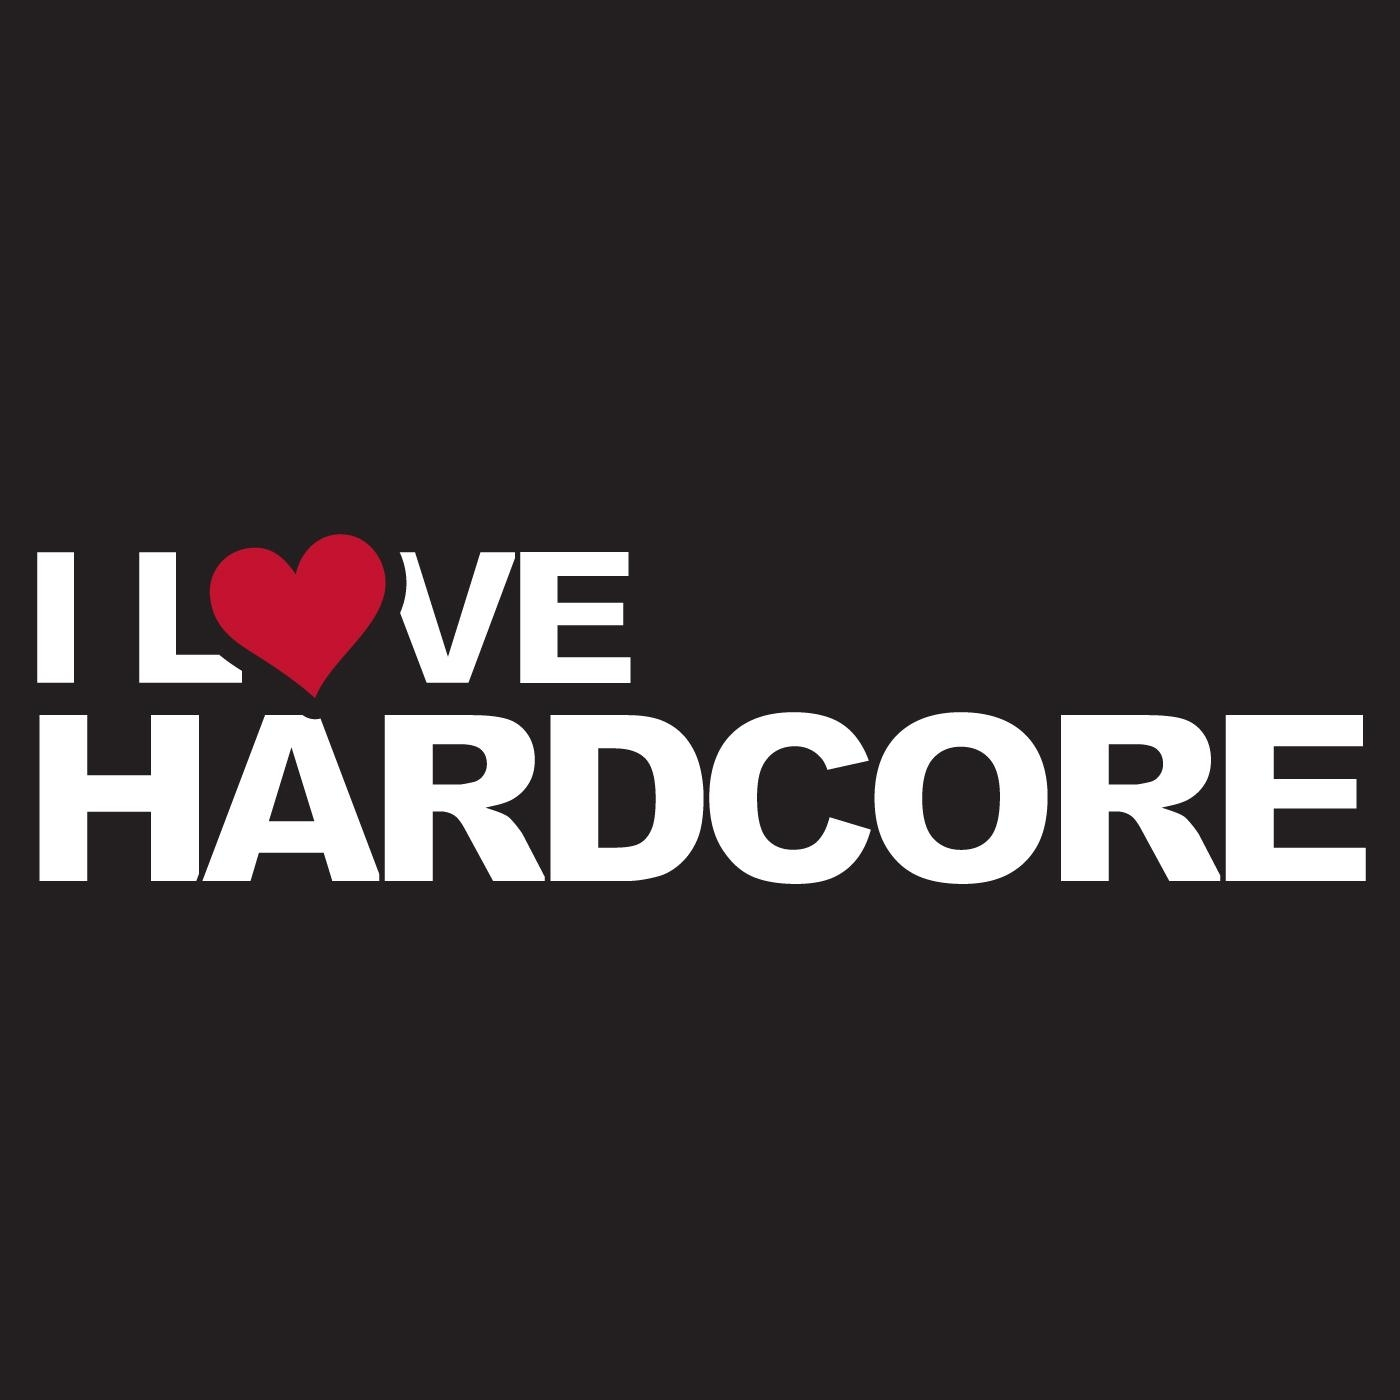 Love hardcore here for